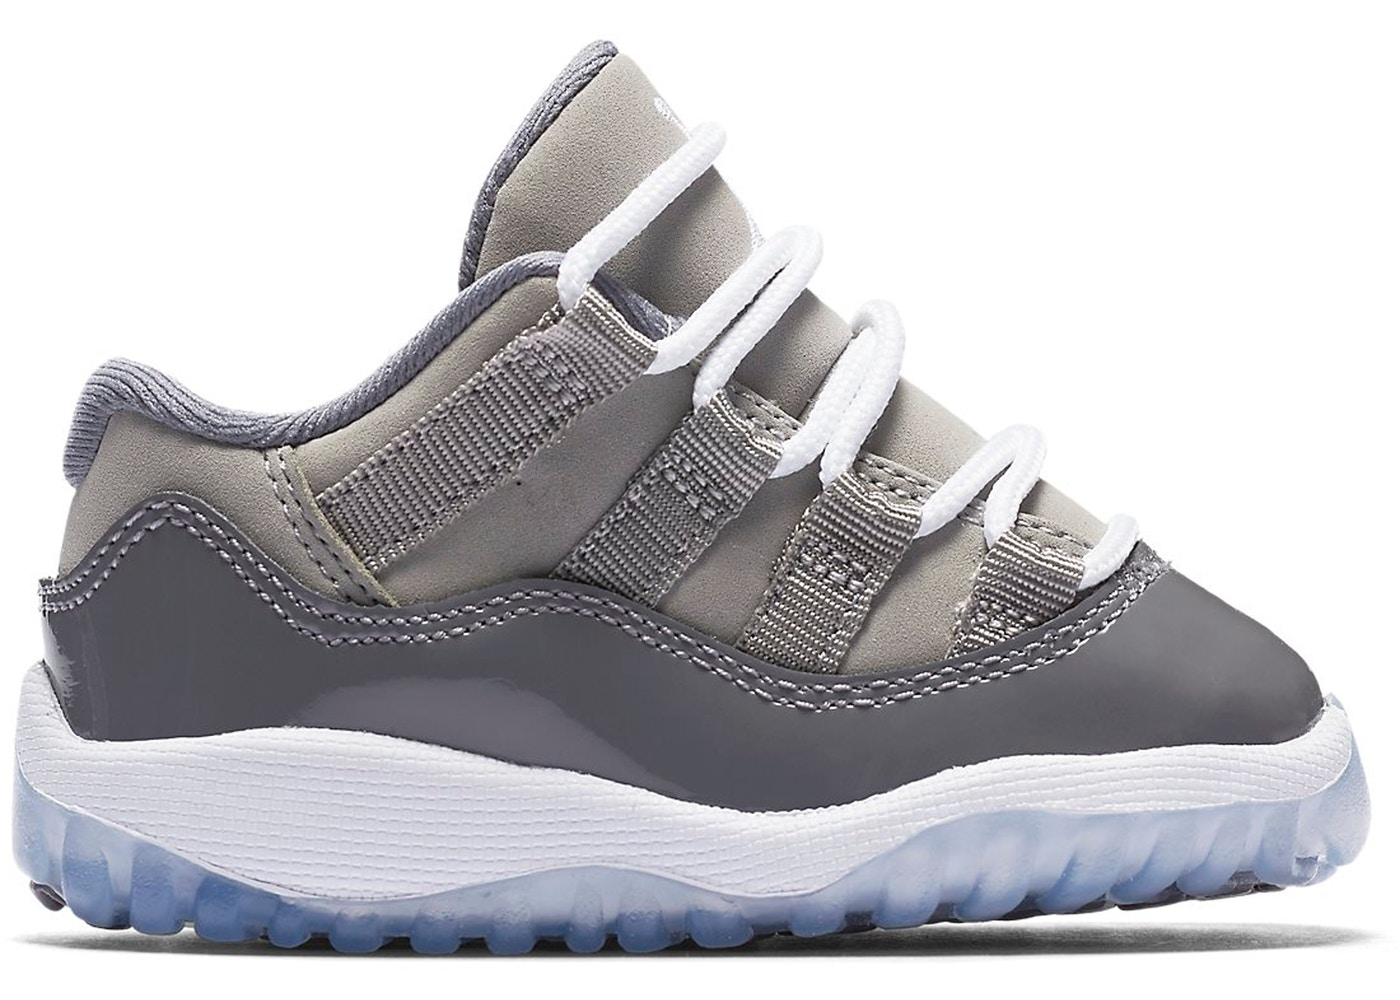 bd0f845e05f491 Sell. or Ask. Size 7. View All Bids. Jordan 11 Retro Low Cool Grey ...